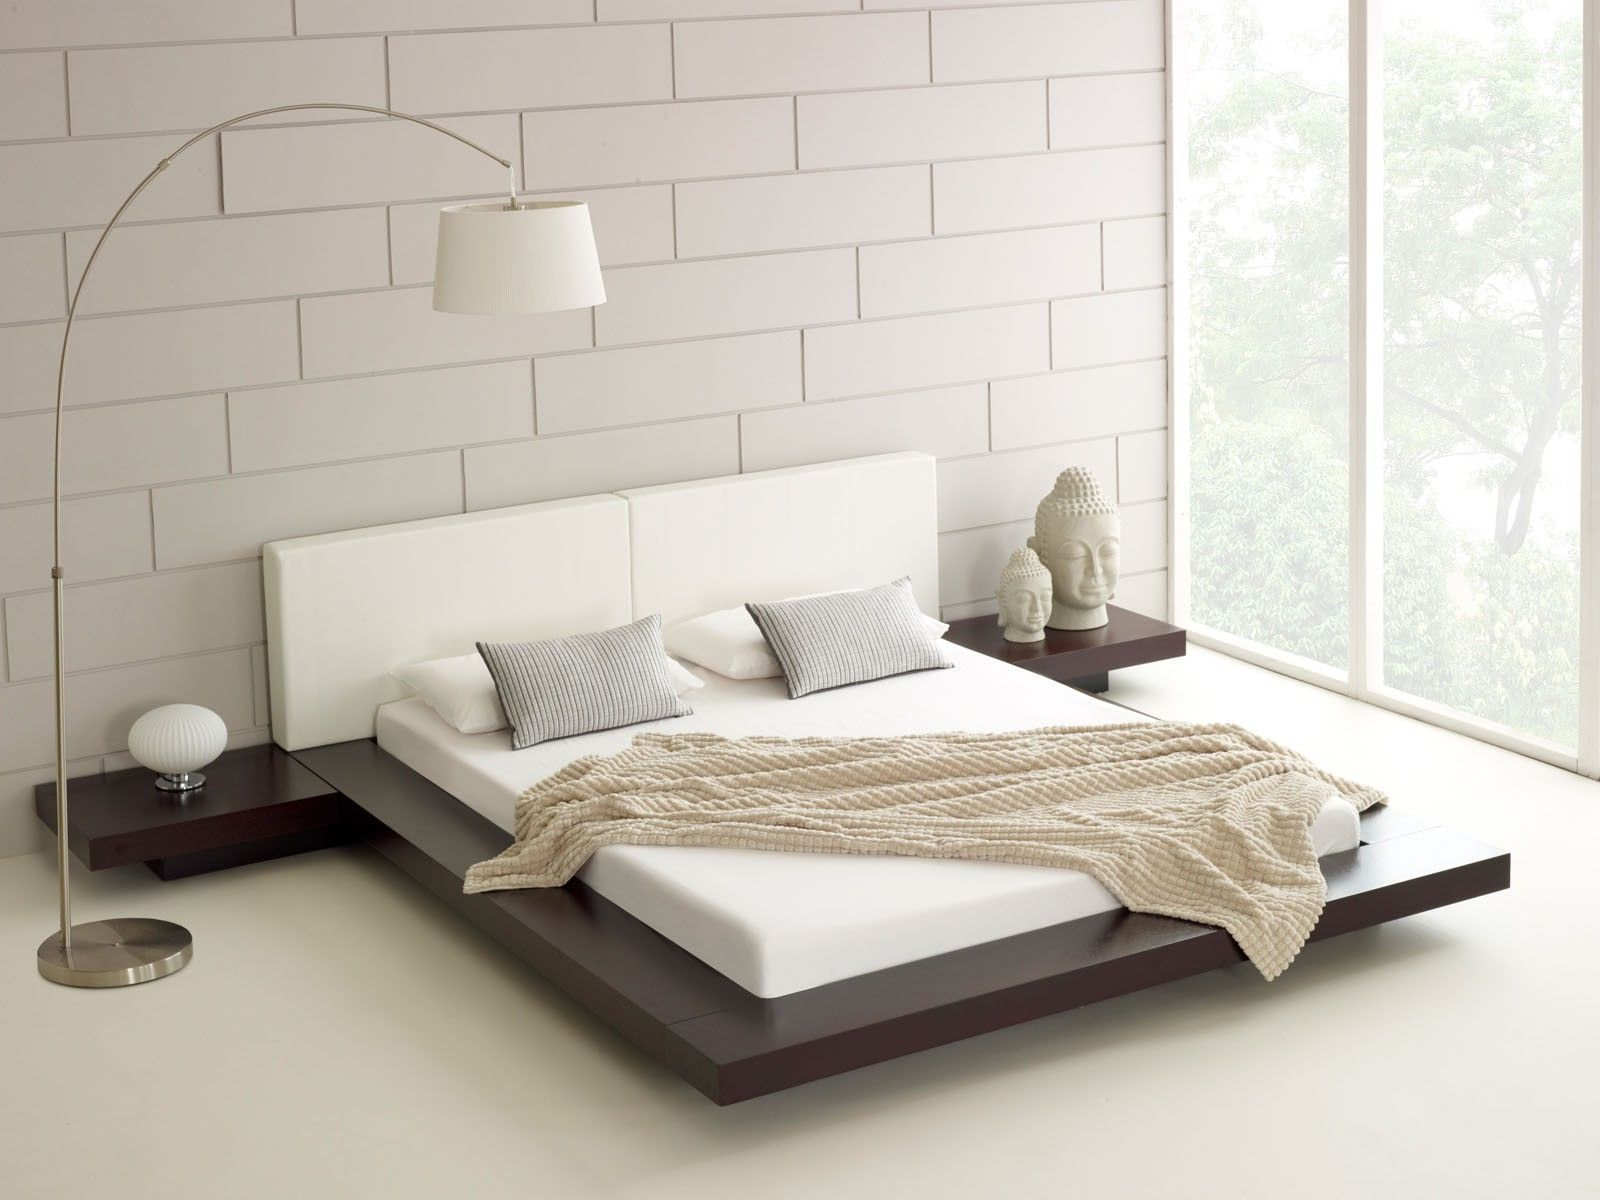 Contemporary White Japanese Bed Design With Unique White